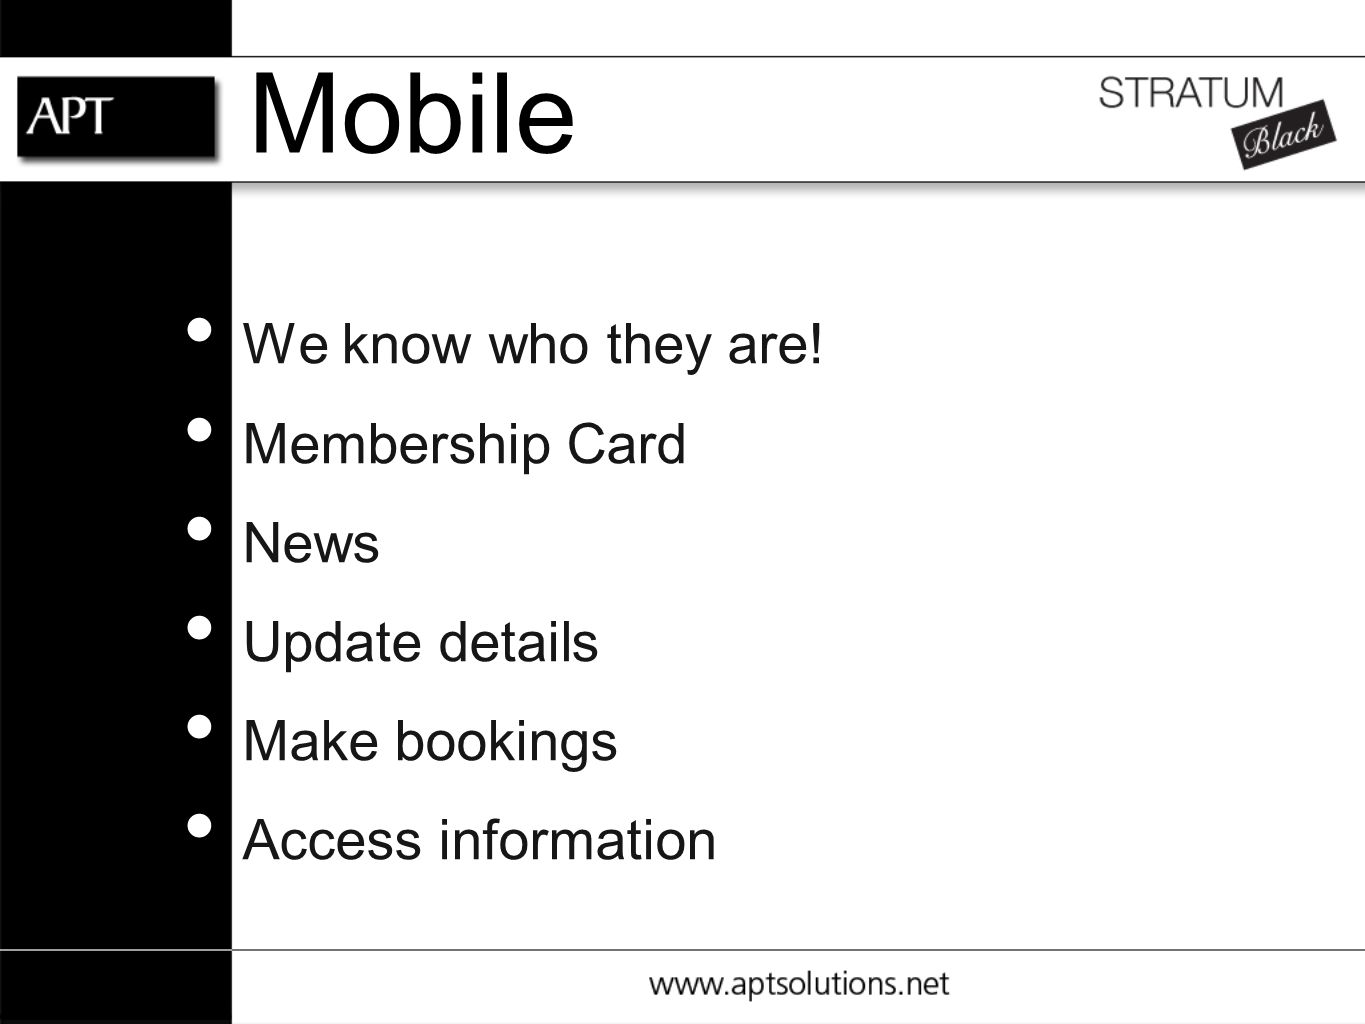 Mobile We know who they are! Membership Card News Update details Make bookings Access information